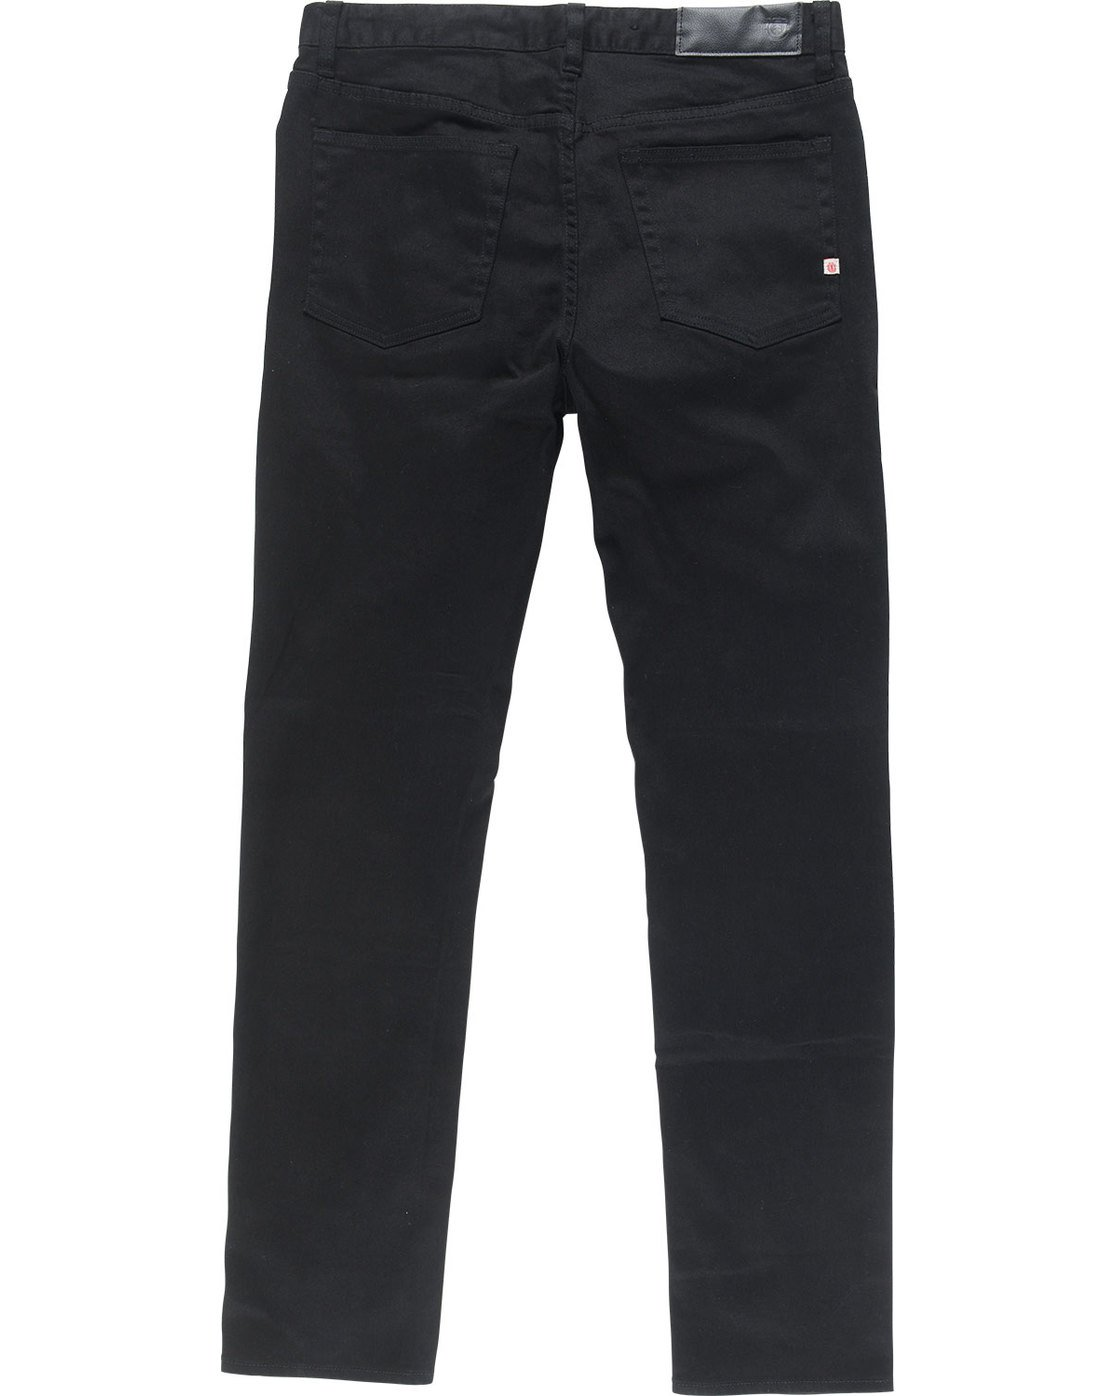 3 E02 Color Jean Black M393LE2C Element